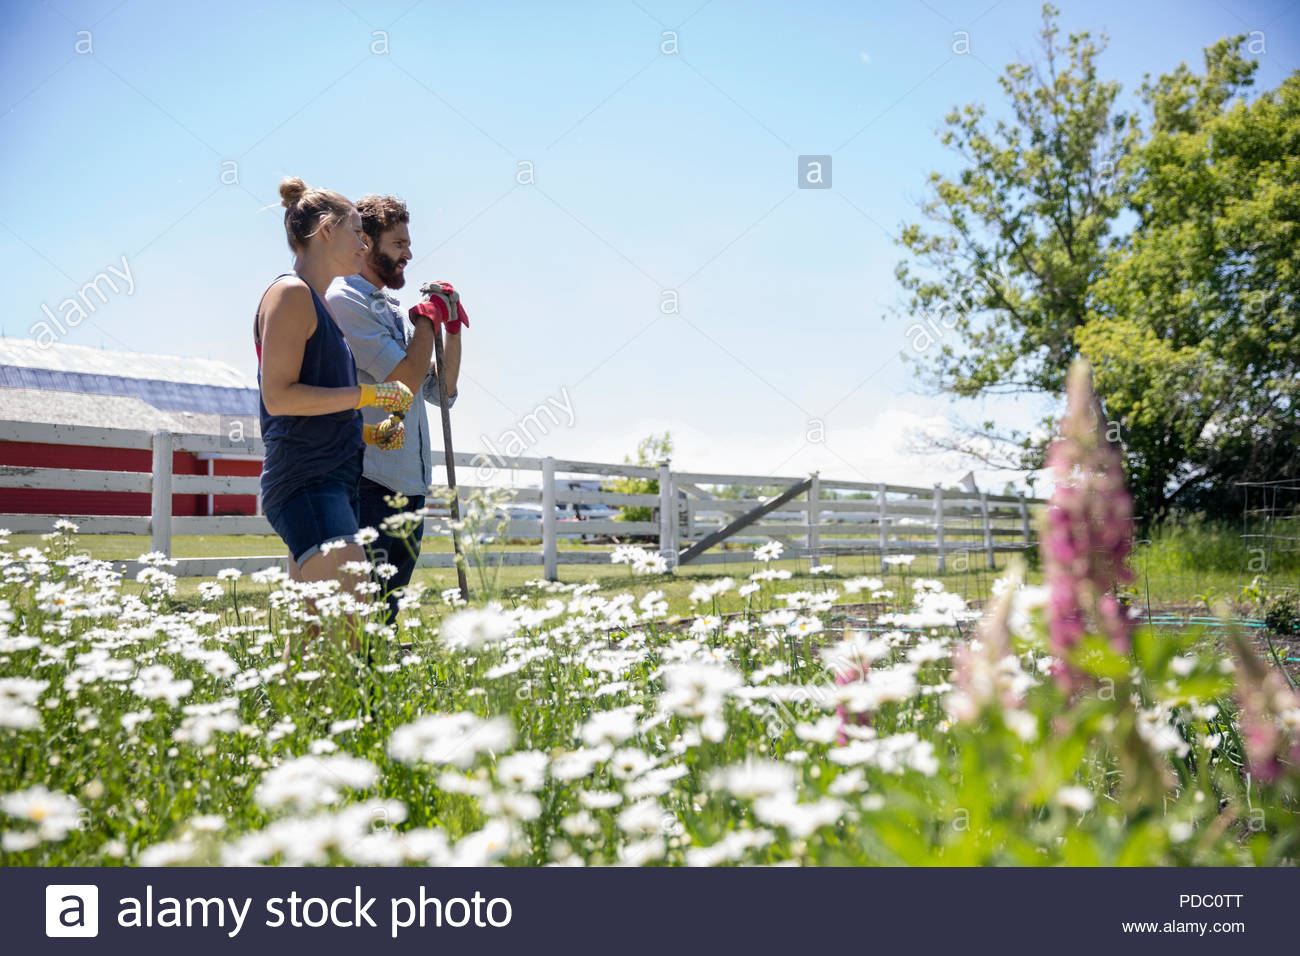 Couple gardening, standing in sunny rural garden - Stock Image